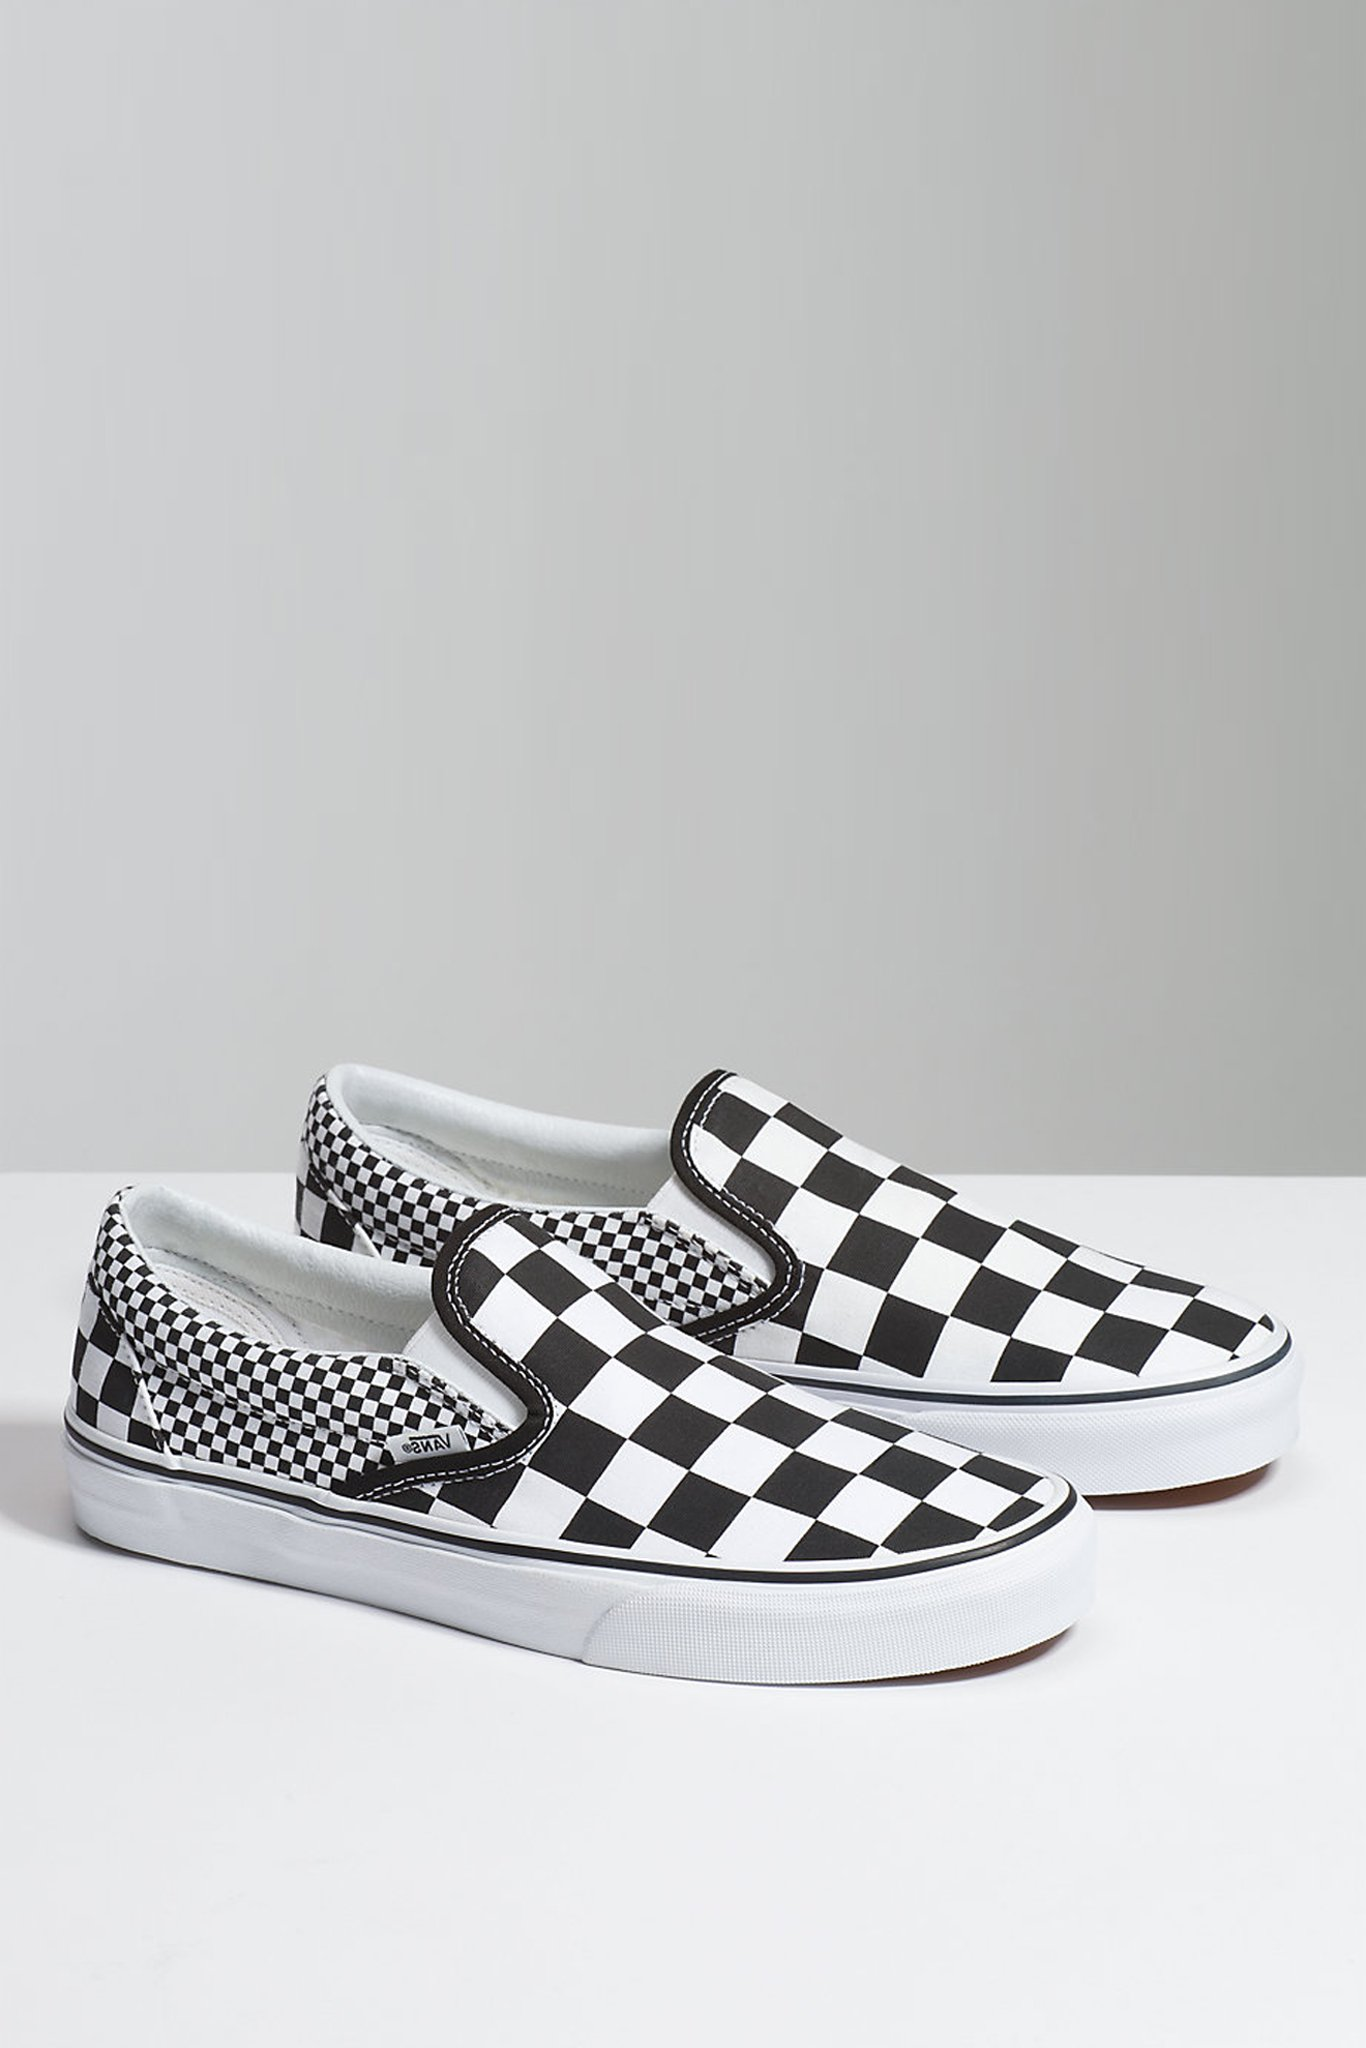 VANS Checkerboard Slip On Black & Black Shoes CHECK